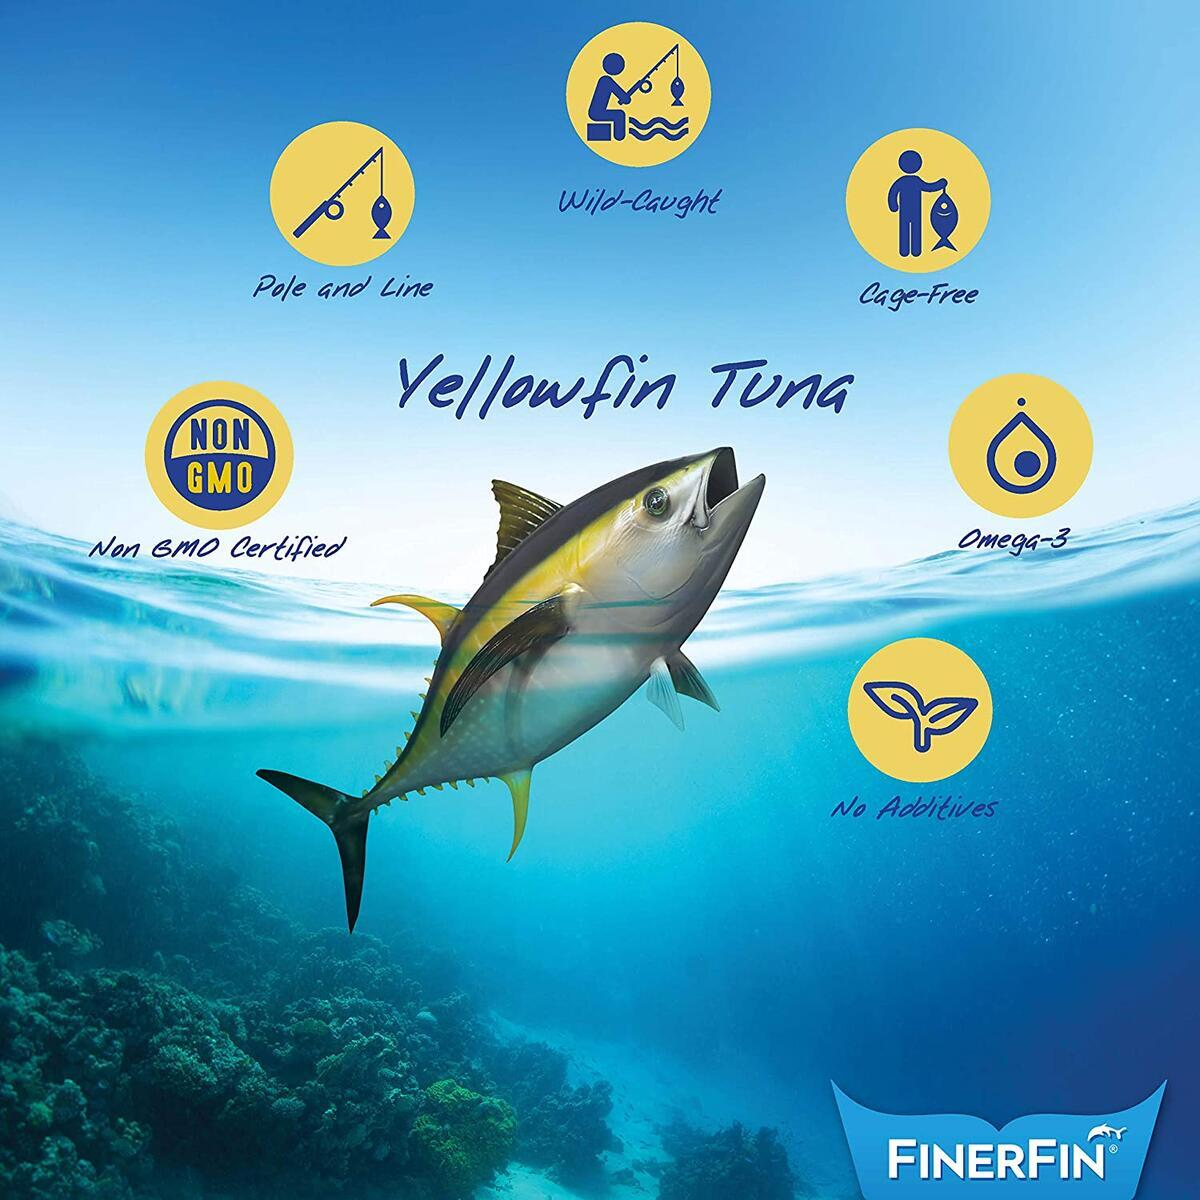 FinerFin Yellowfin Tuna In Organic Olive Oil – Mexicana Salad Flavor (4.4oz can - 6 Pack); Premium Canned Fish with EVOO, Gourmet Ready-to-Eat Fillets, Wild-Caught